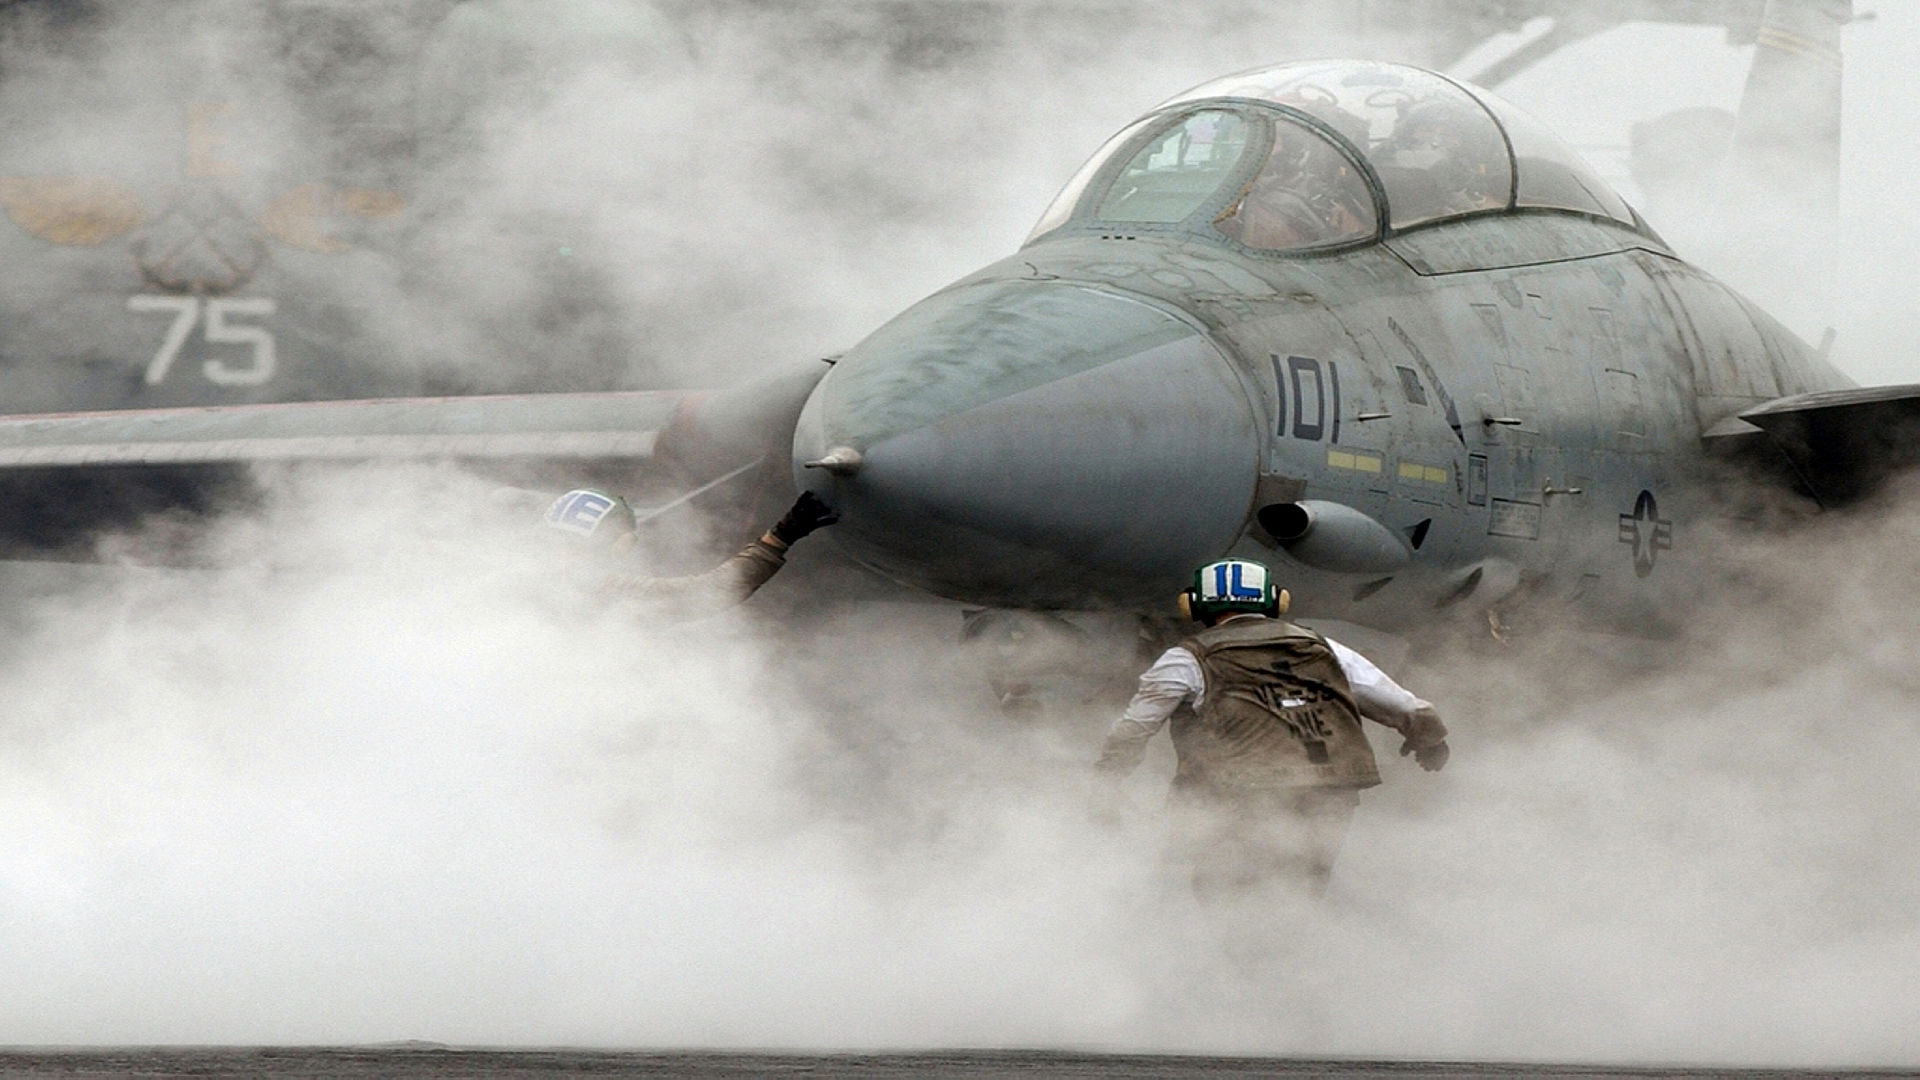 HD Military Wallpapers for your Laptop and Computer   Page 1920x1080